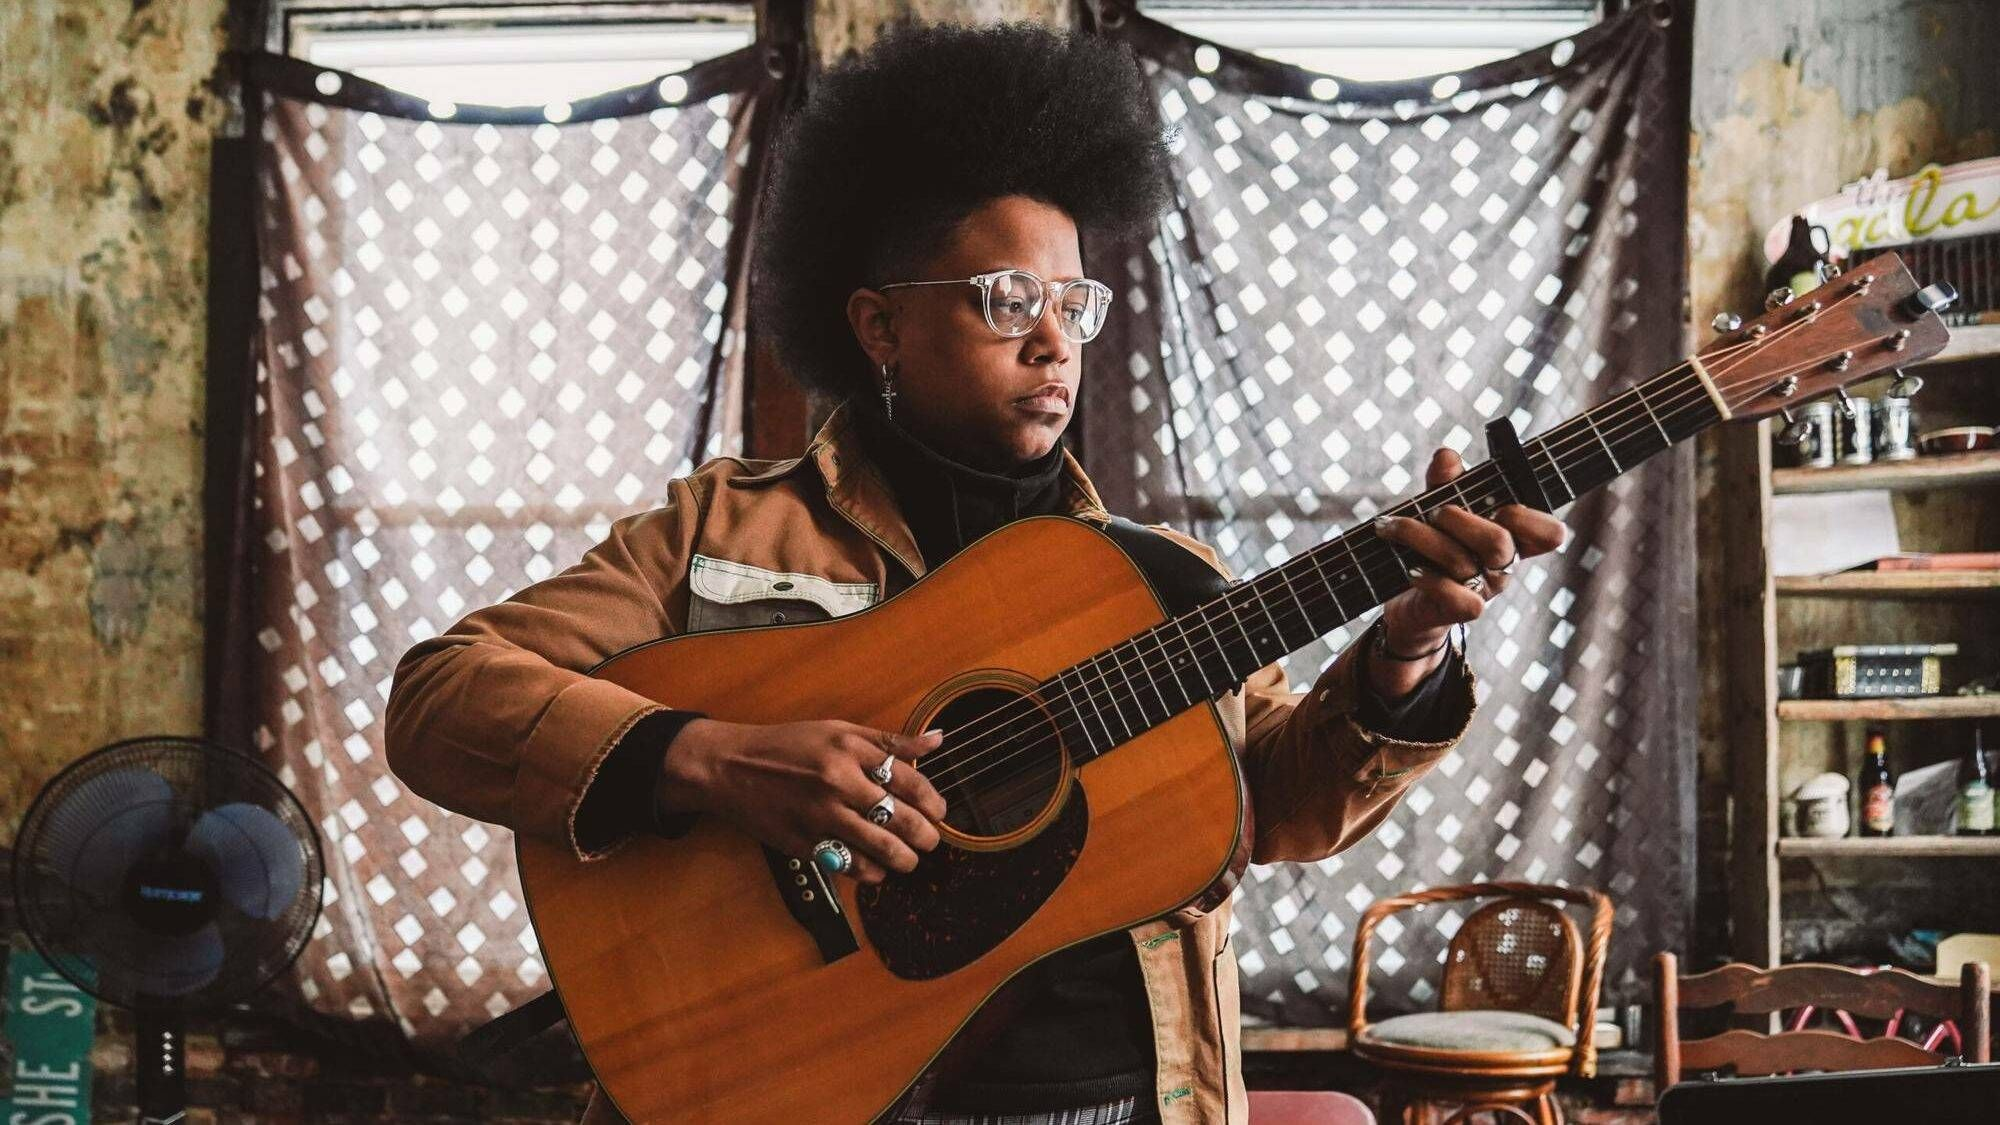 A woman plays guitar in an old apartment building, music as therapy, Rewire